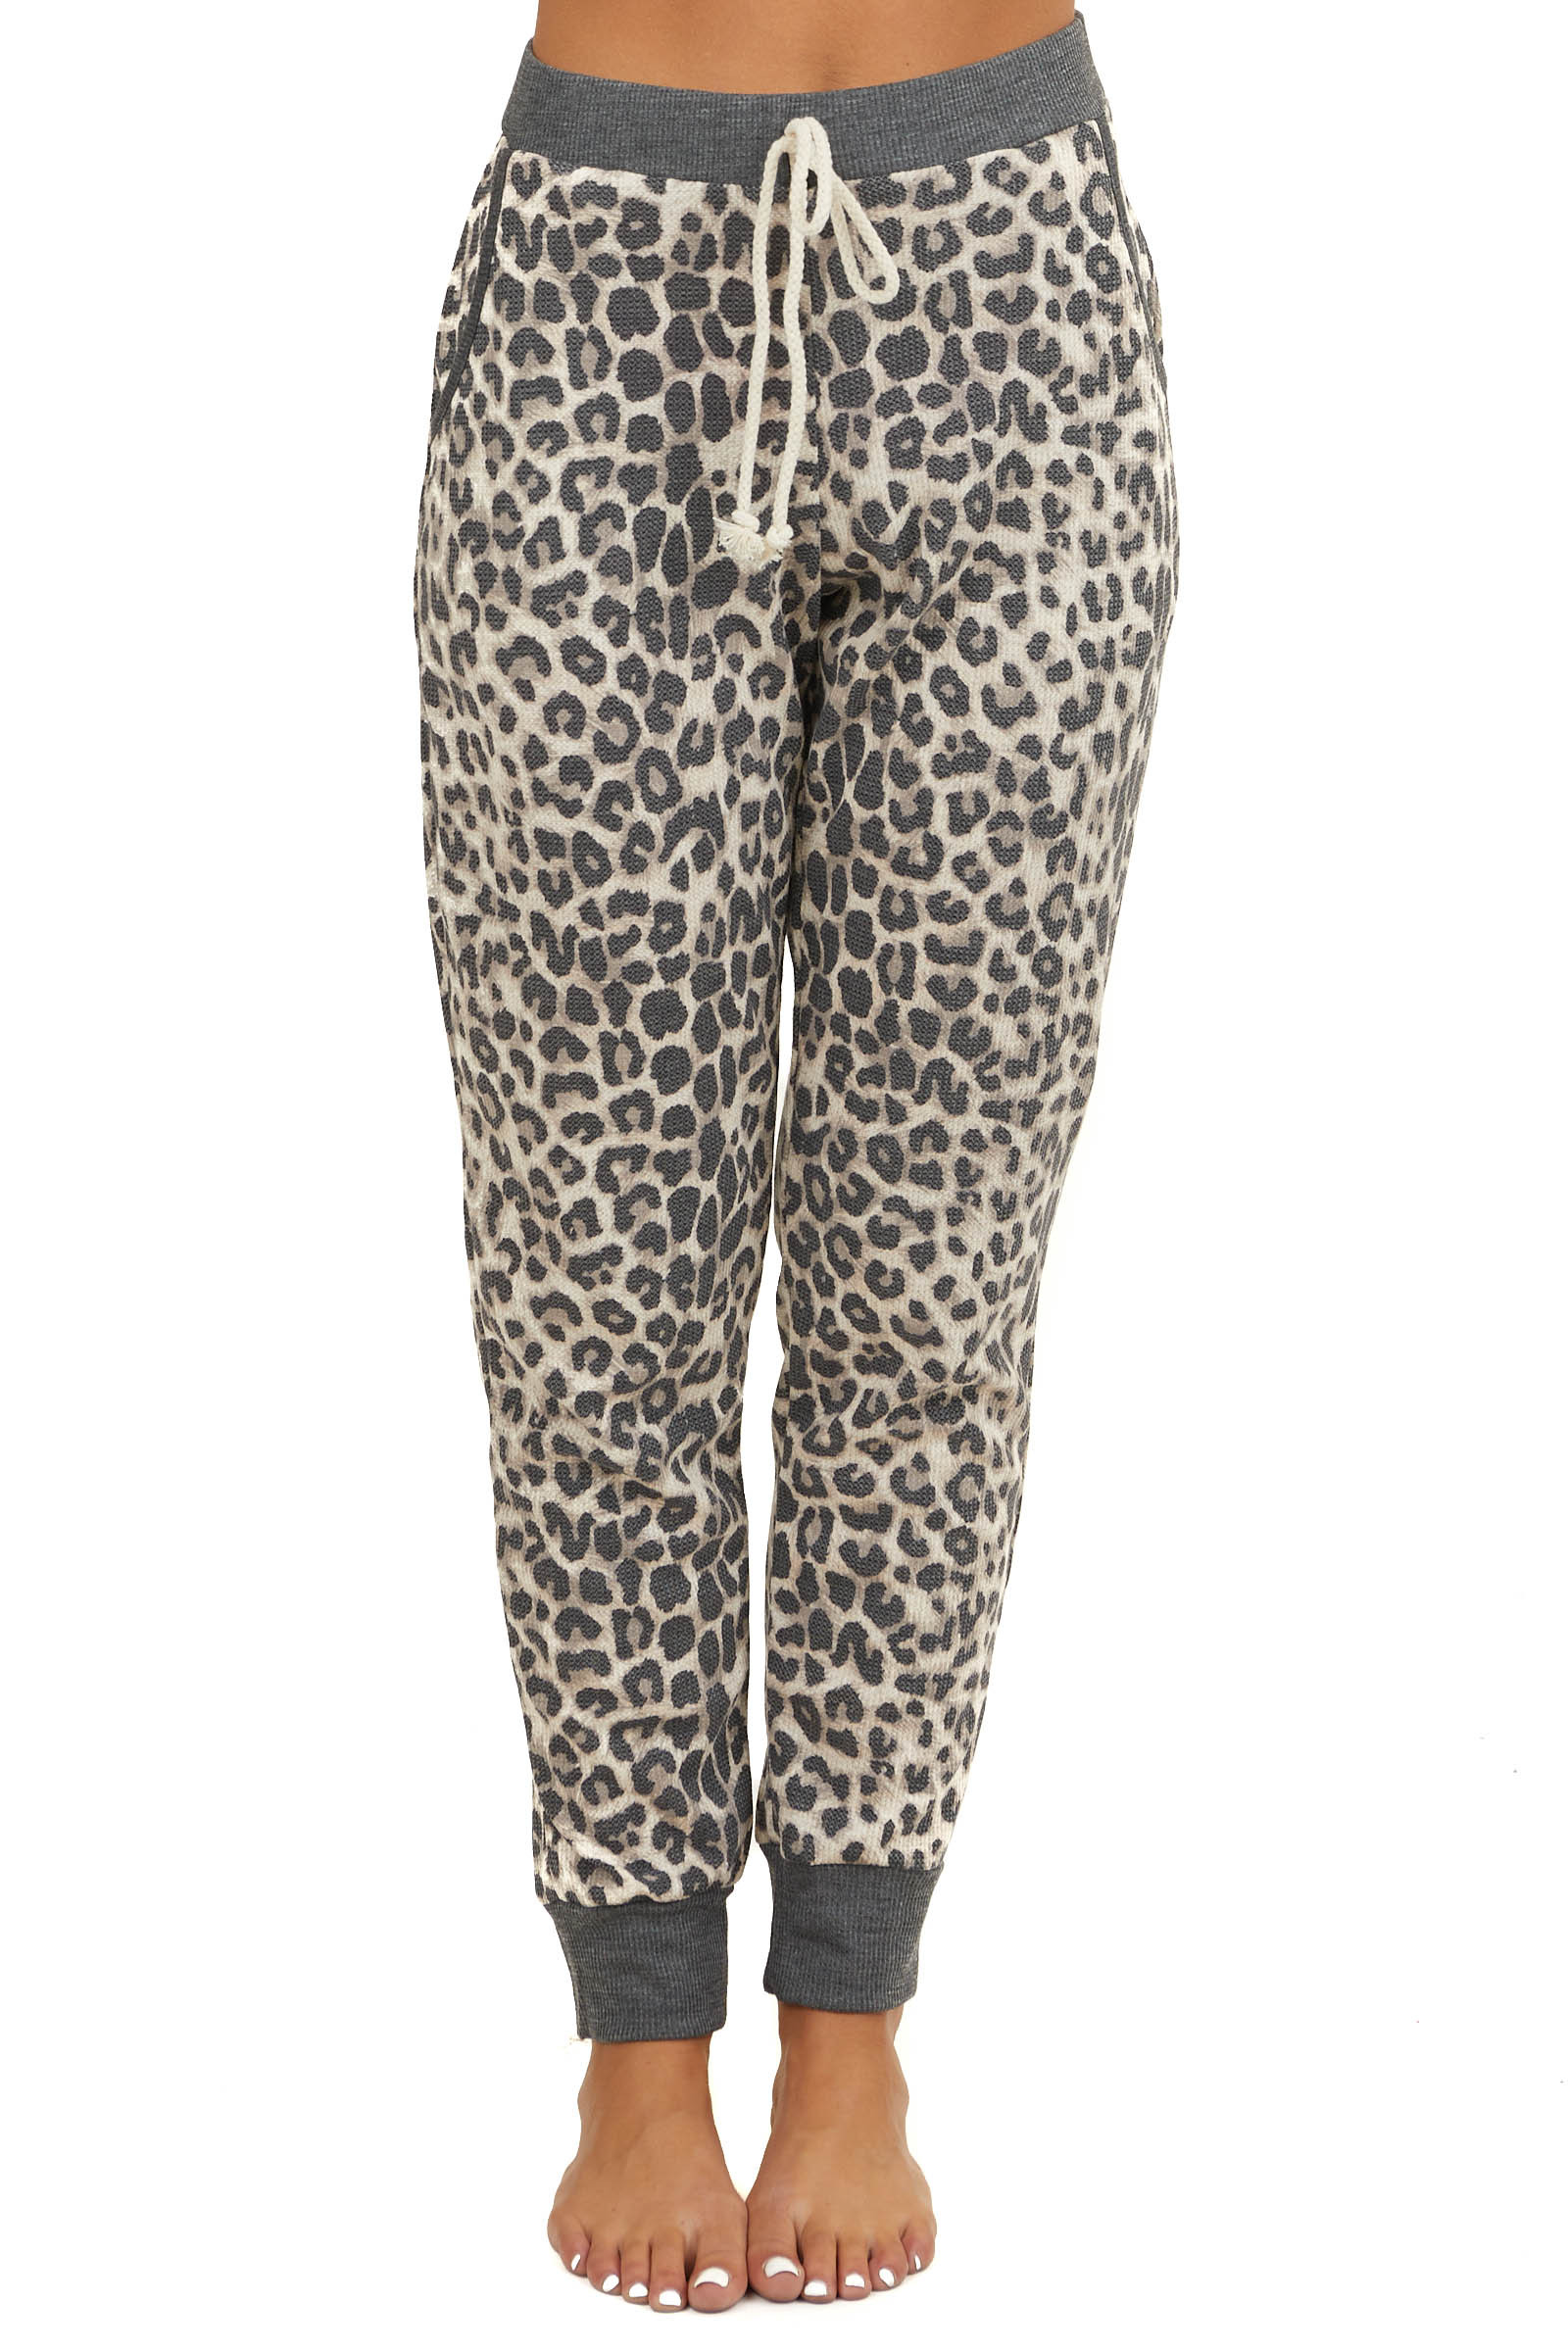 Oatmeal and Charcoal Leopard Print Joggers with Waist Tie